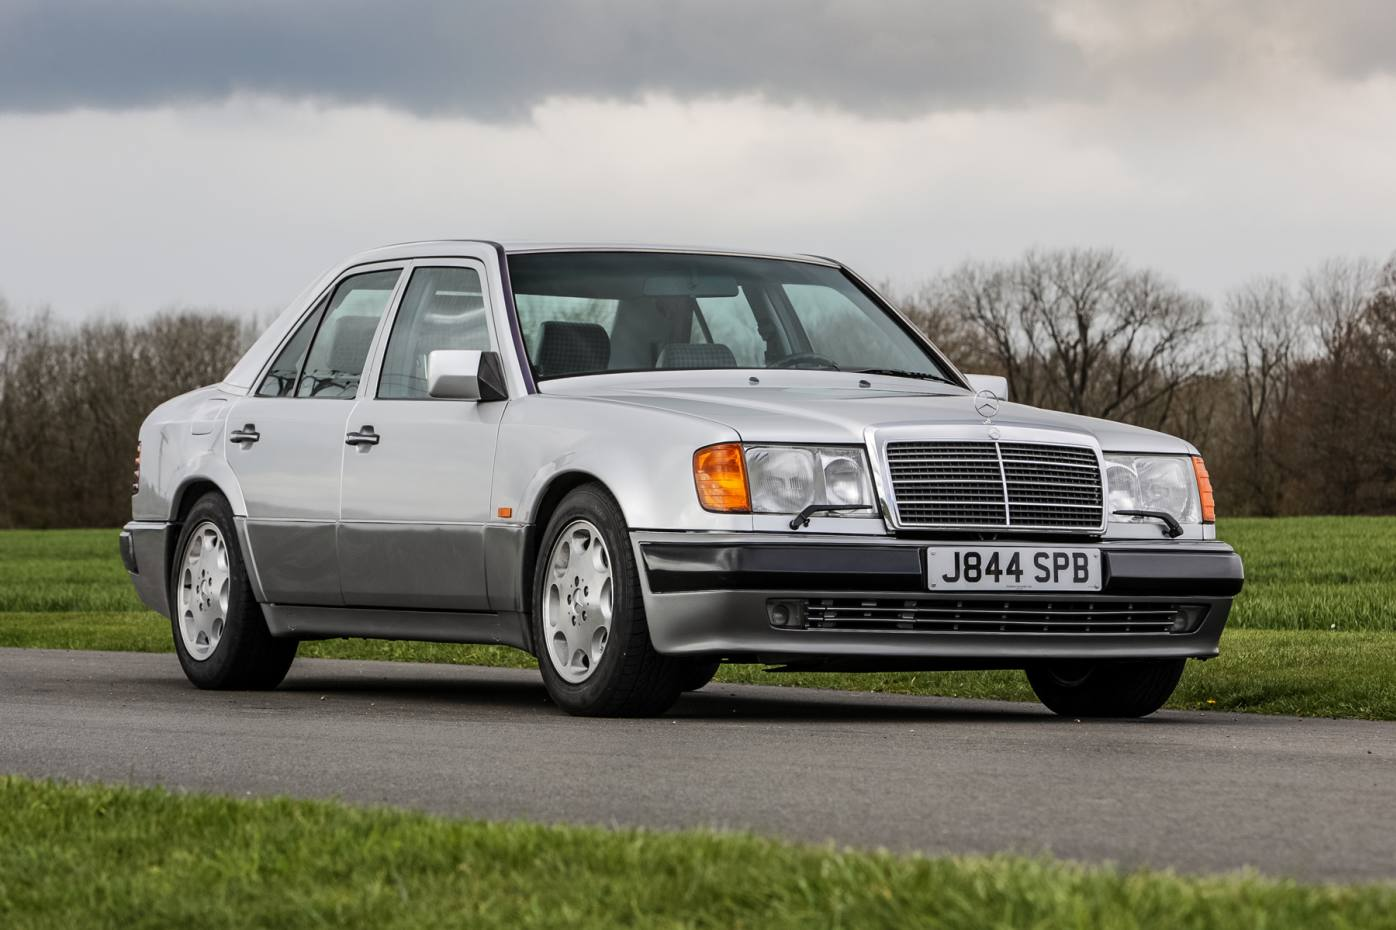 Rowan Atkinson's Mercedes 500 E's 5.0-litre V8 engine goes from 0 to 62mph in 5.5 seconds